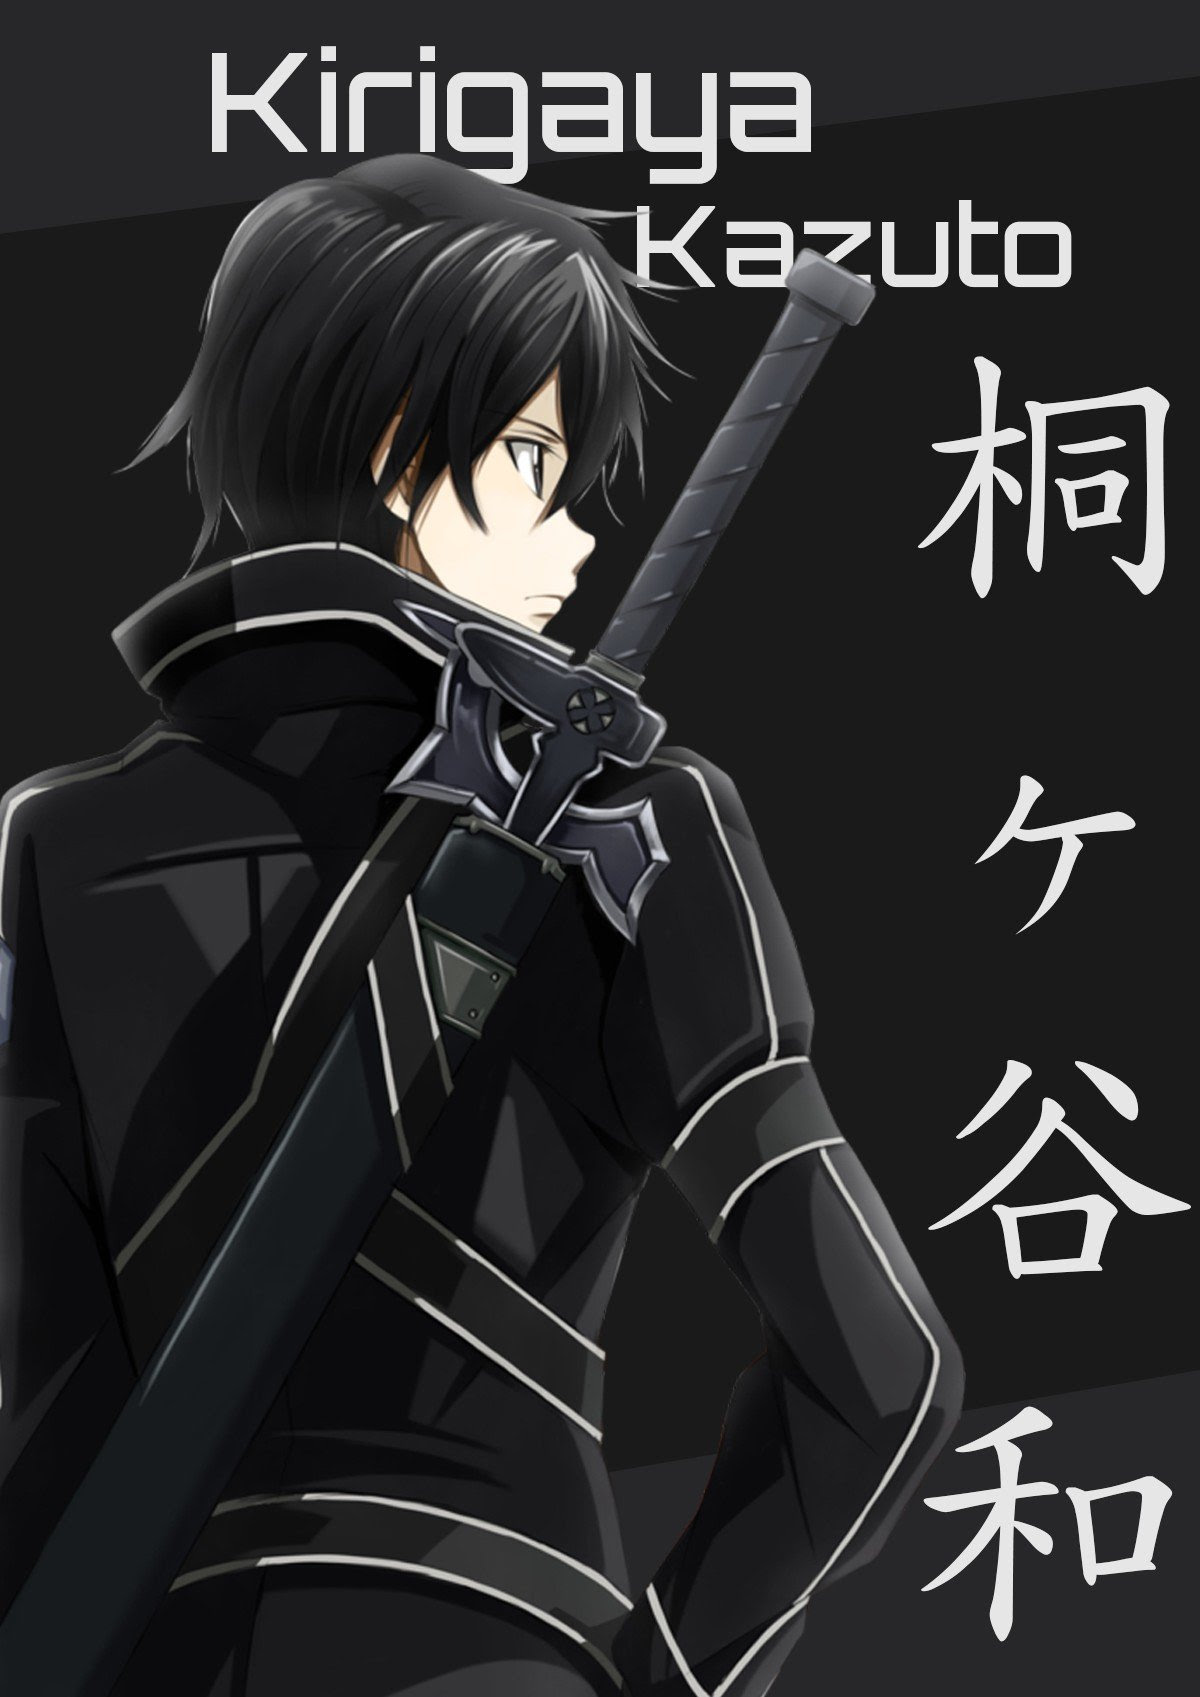 Cool Anime Boy With Sword Wallpaper